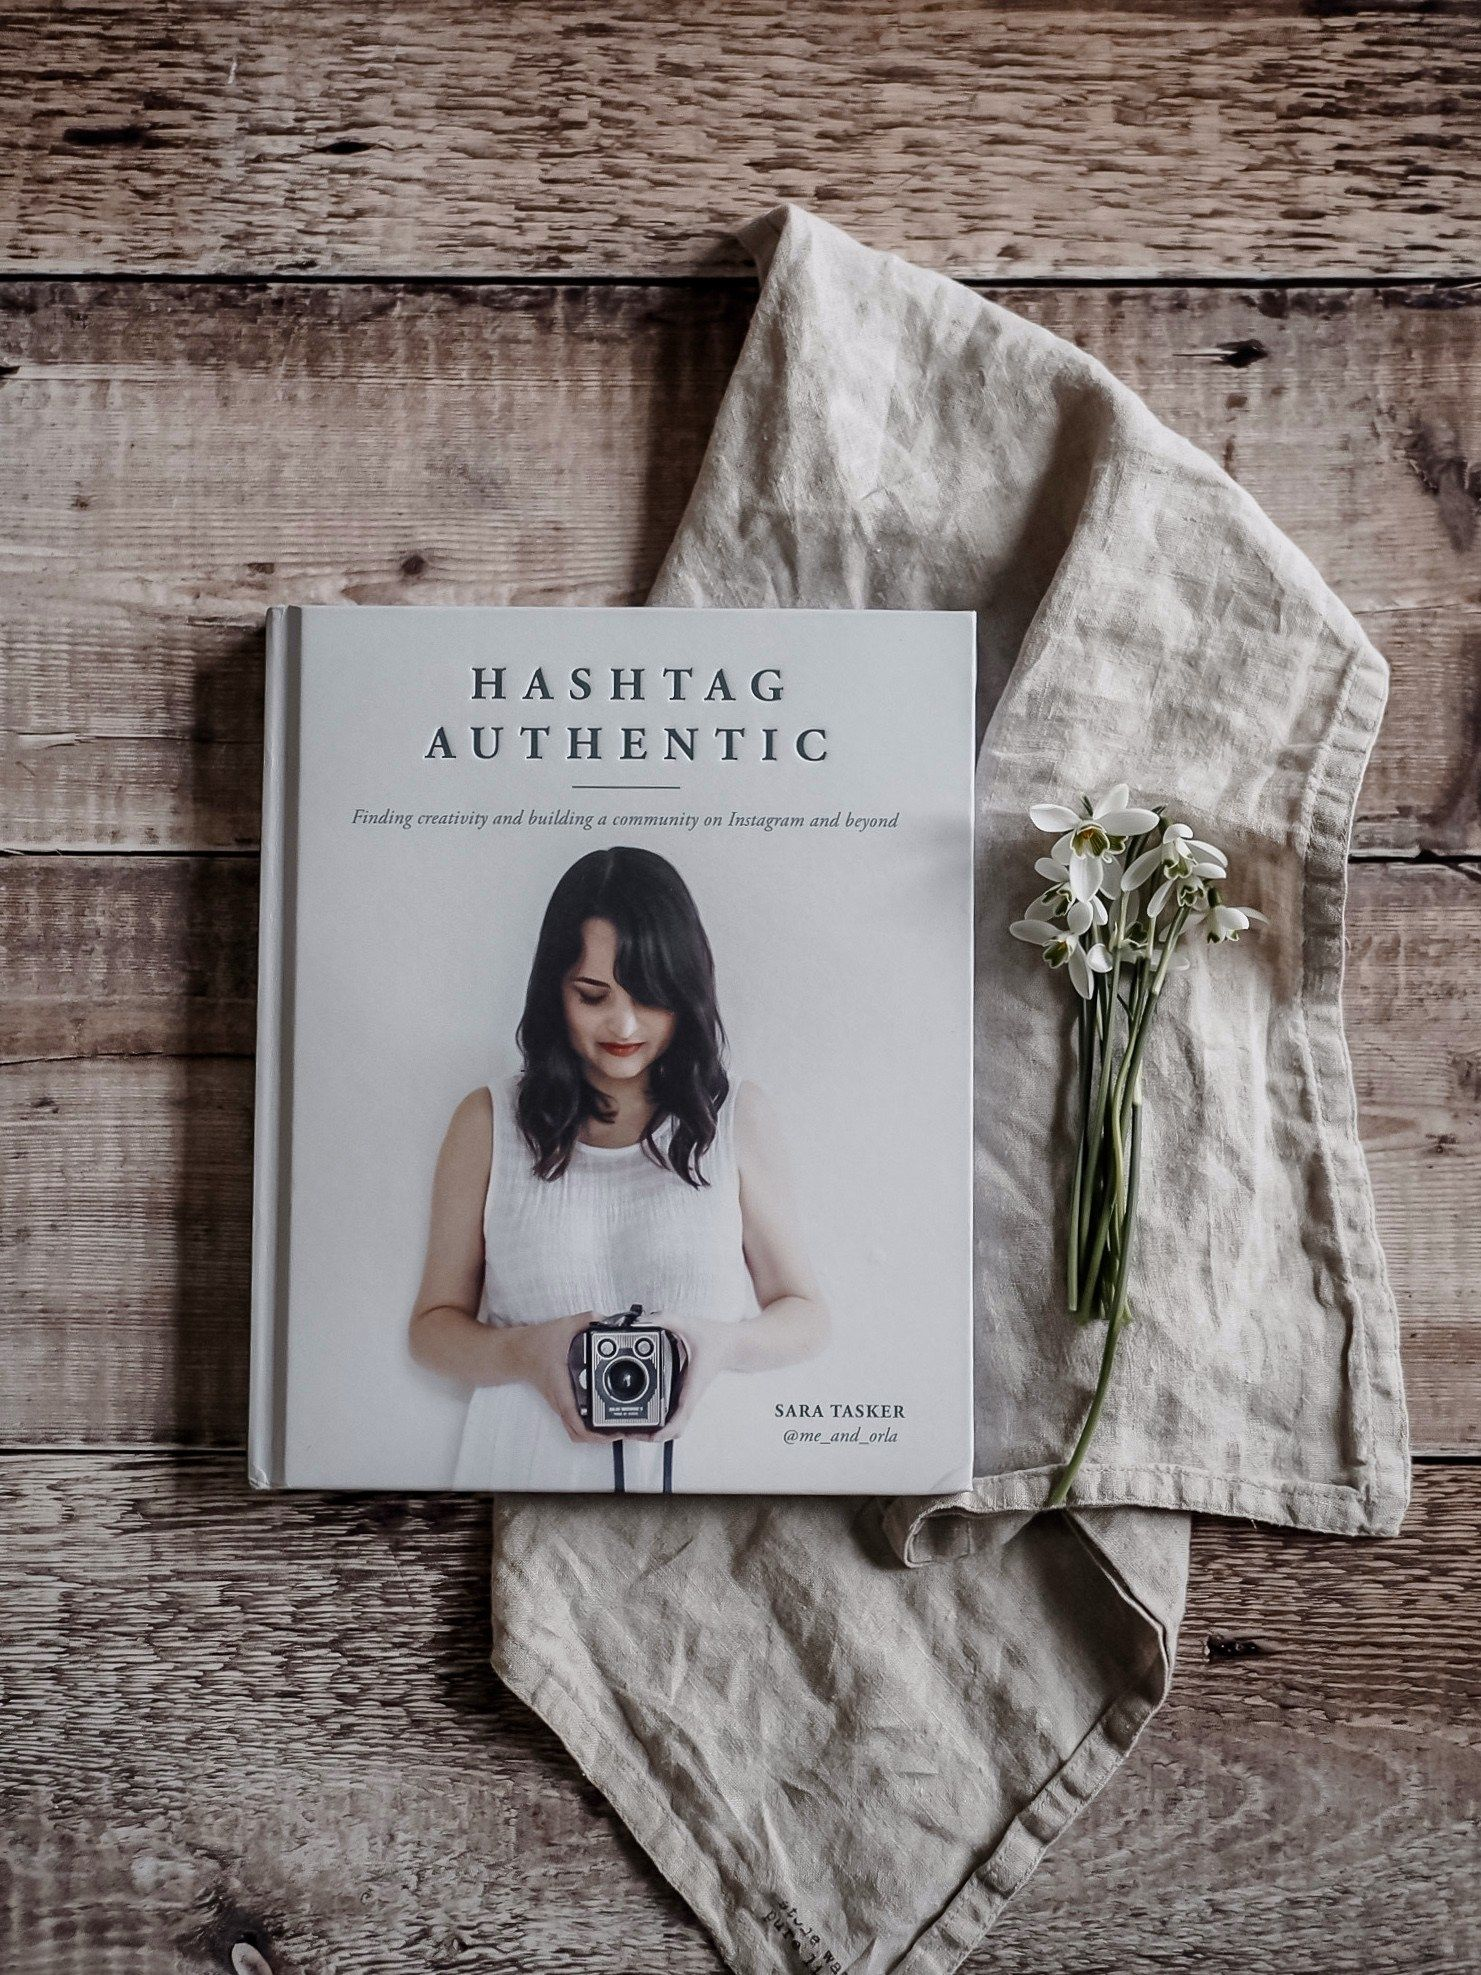 Hashtag authentic the book aye lined pinterest beauty